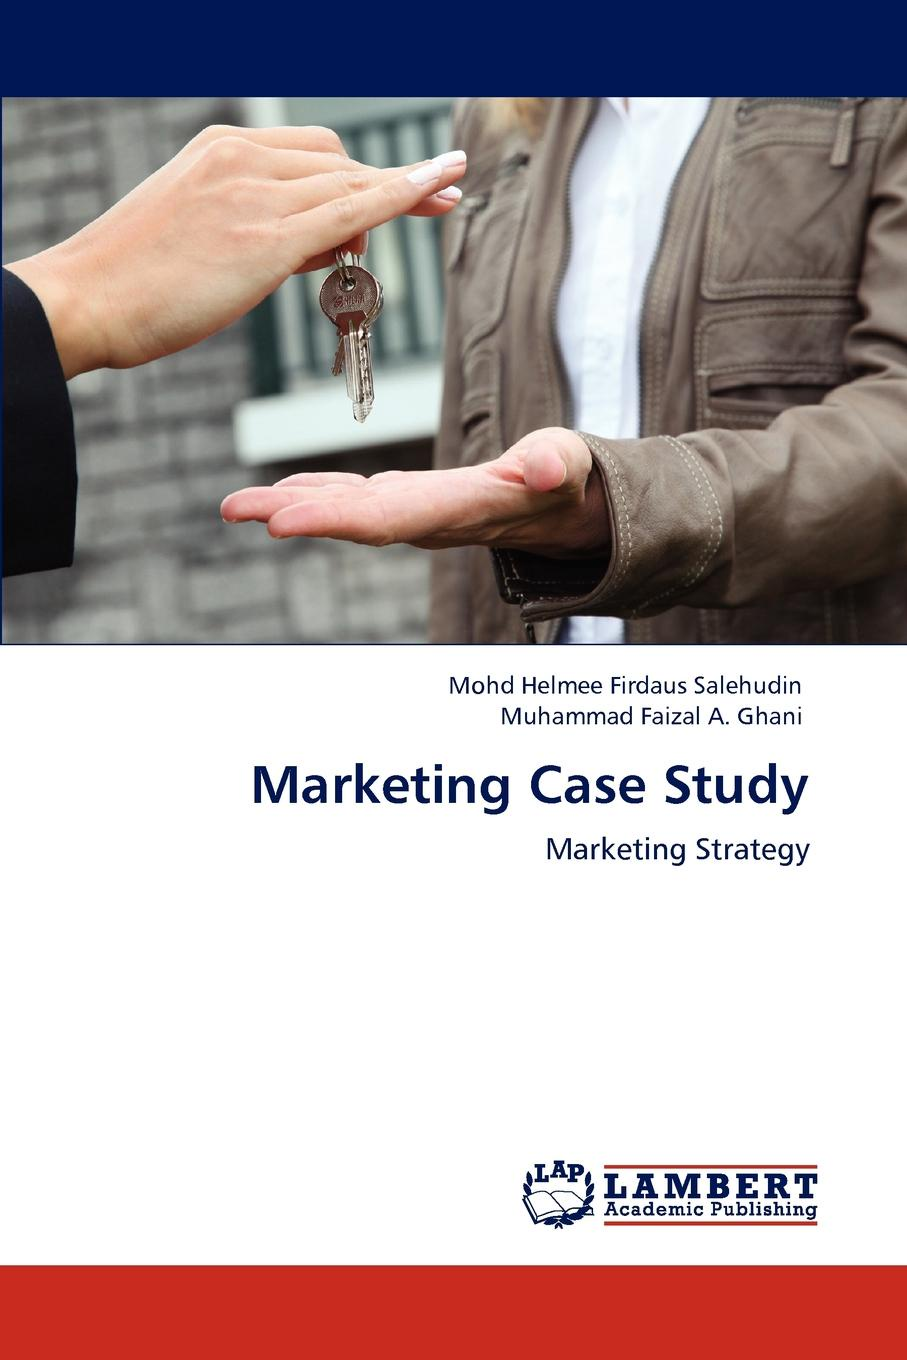 Marketing Case Study This book focuses the influence of marketing strategy on personal...